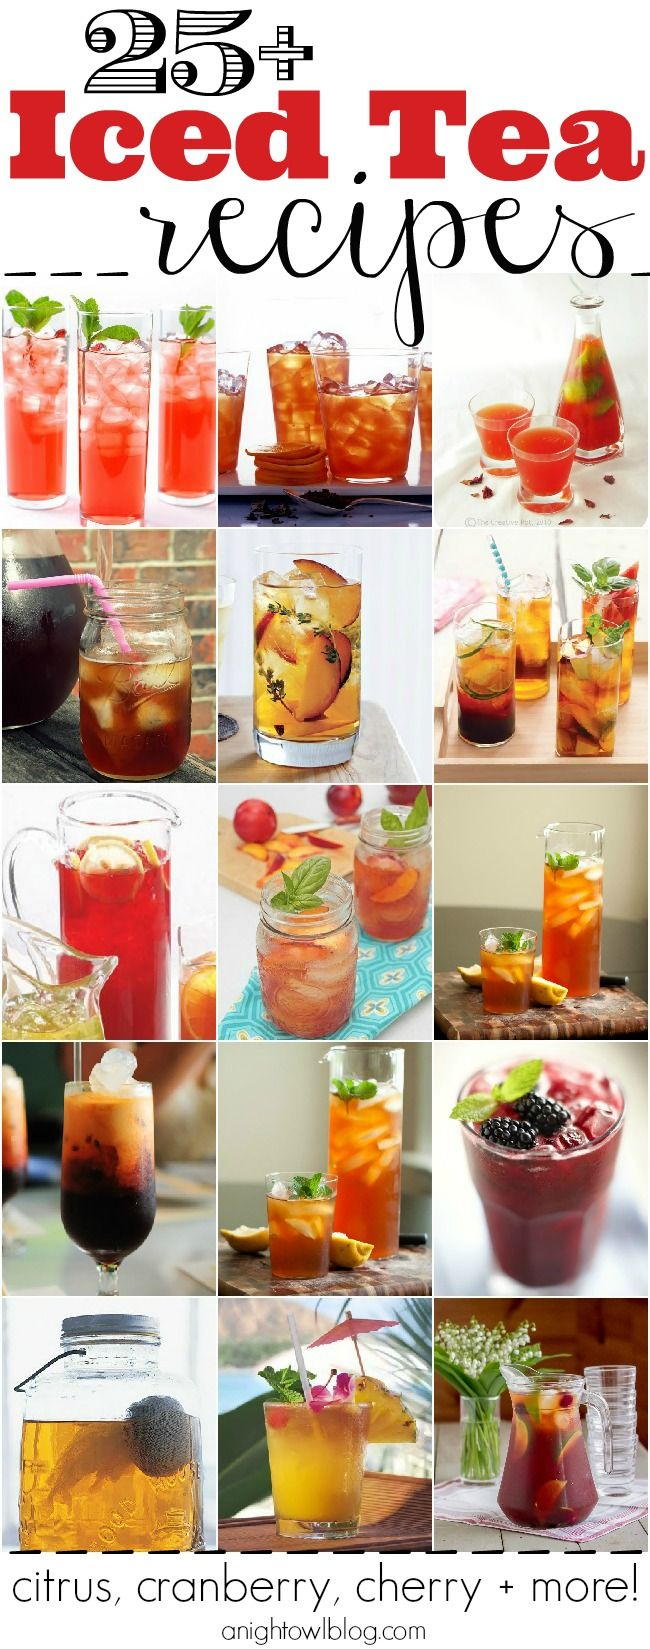 25 Iced Tea Recipes to cool you down on a hot day - Including Citrus, Cranberry, Cherry and lots more #icedtea...x